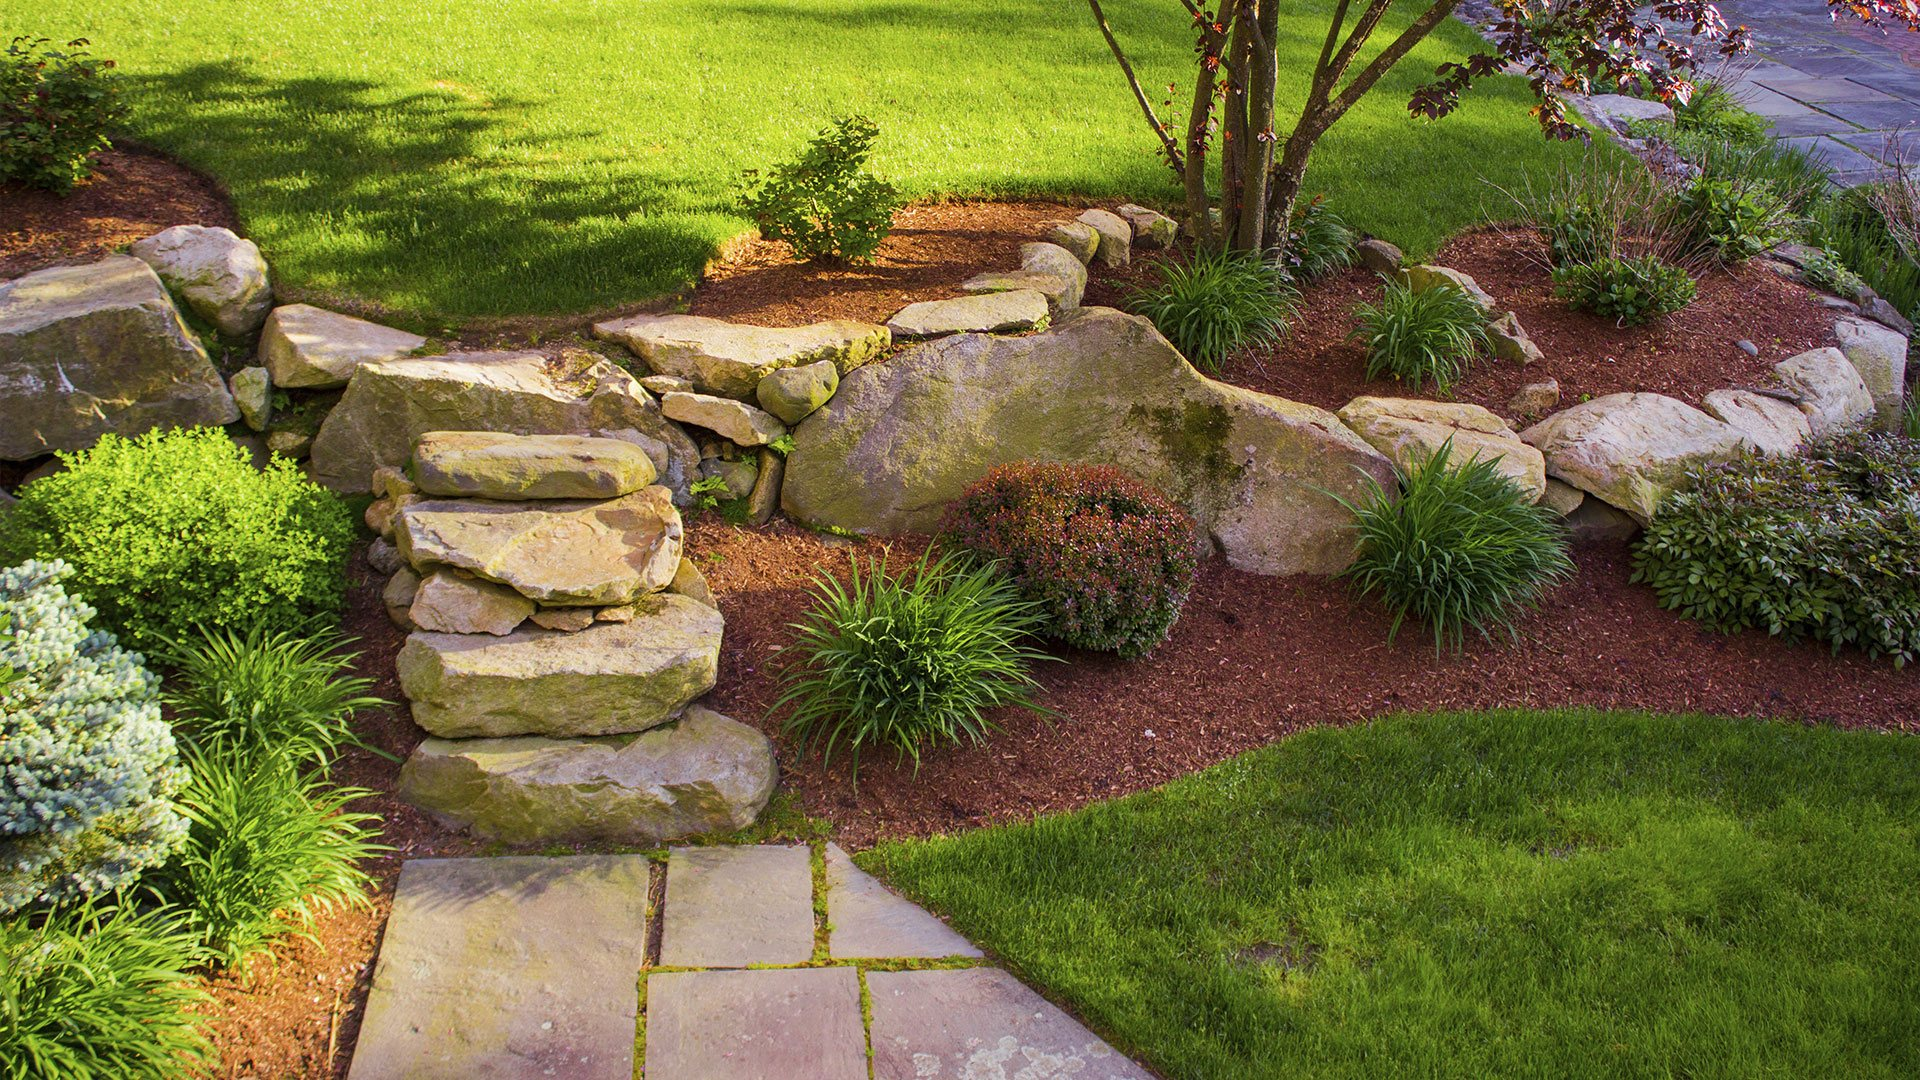 Ground Cover Landscaping Services Sod Installation, Concrete Patios and Irrigation slide 3